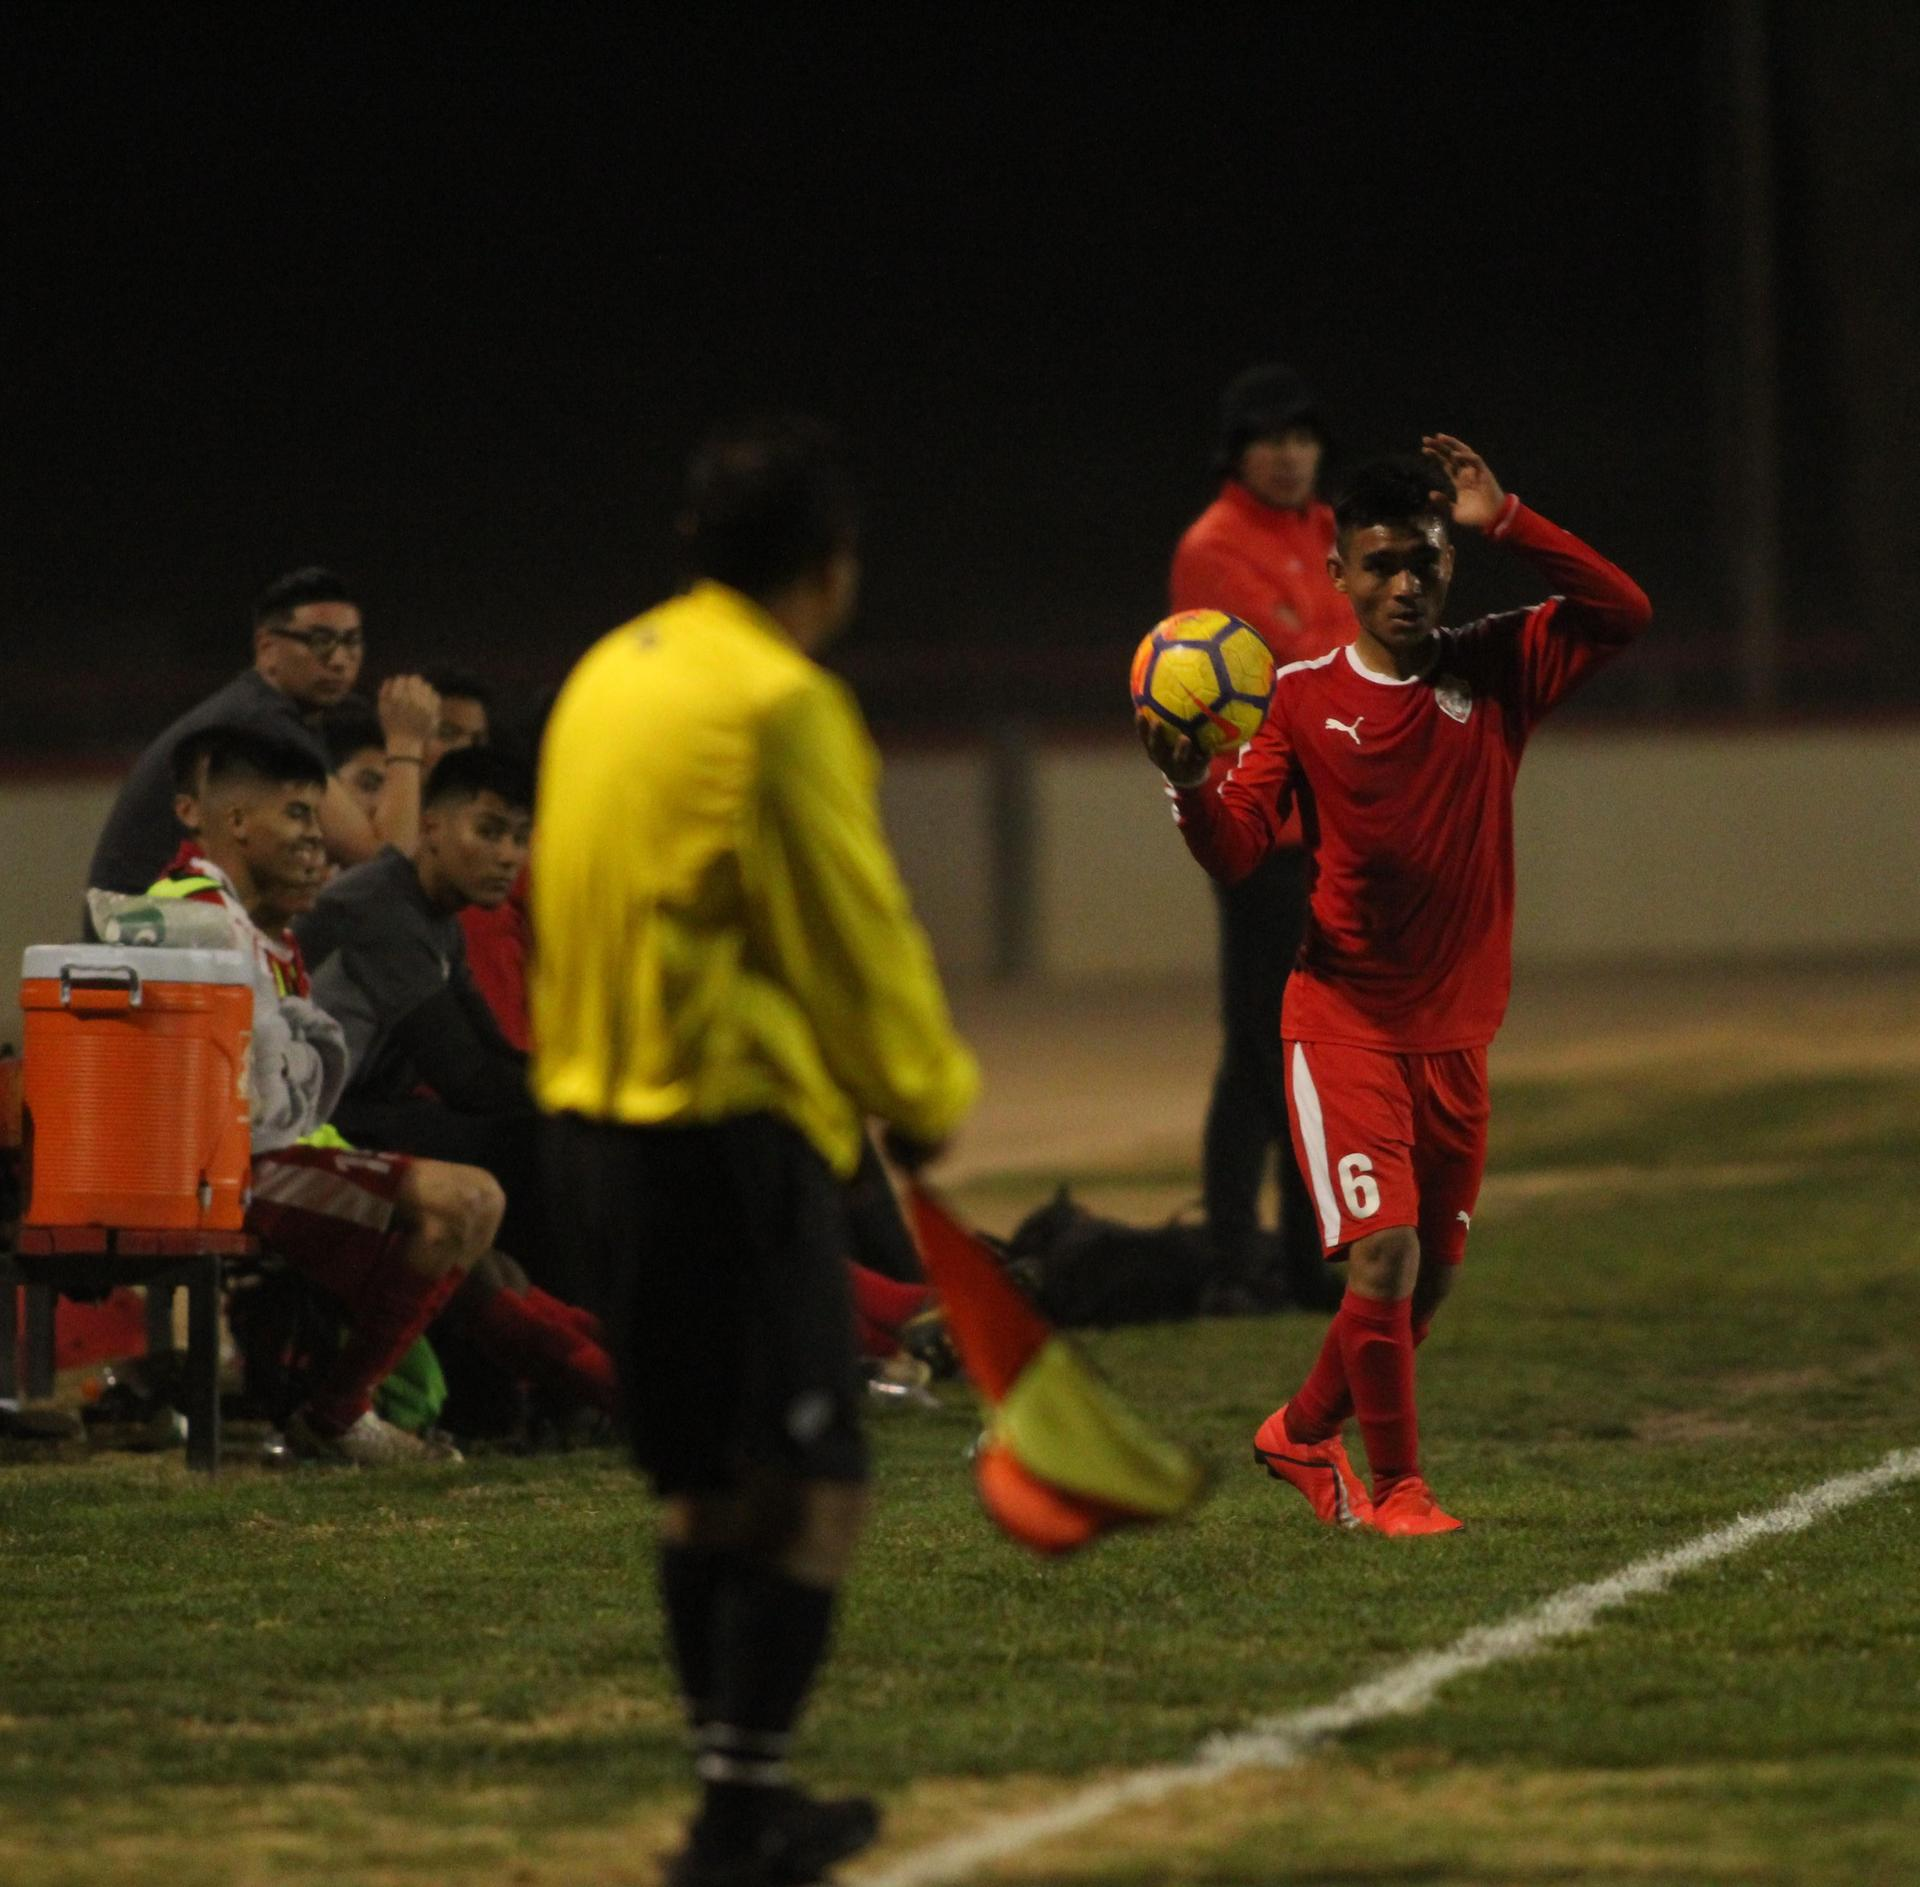 Arwin Brizo with the ball